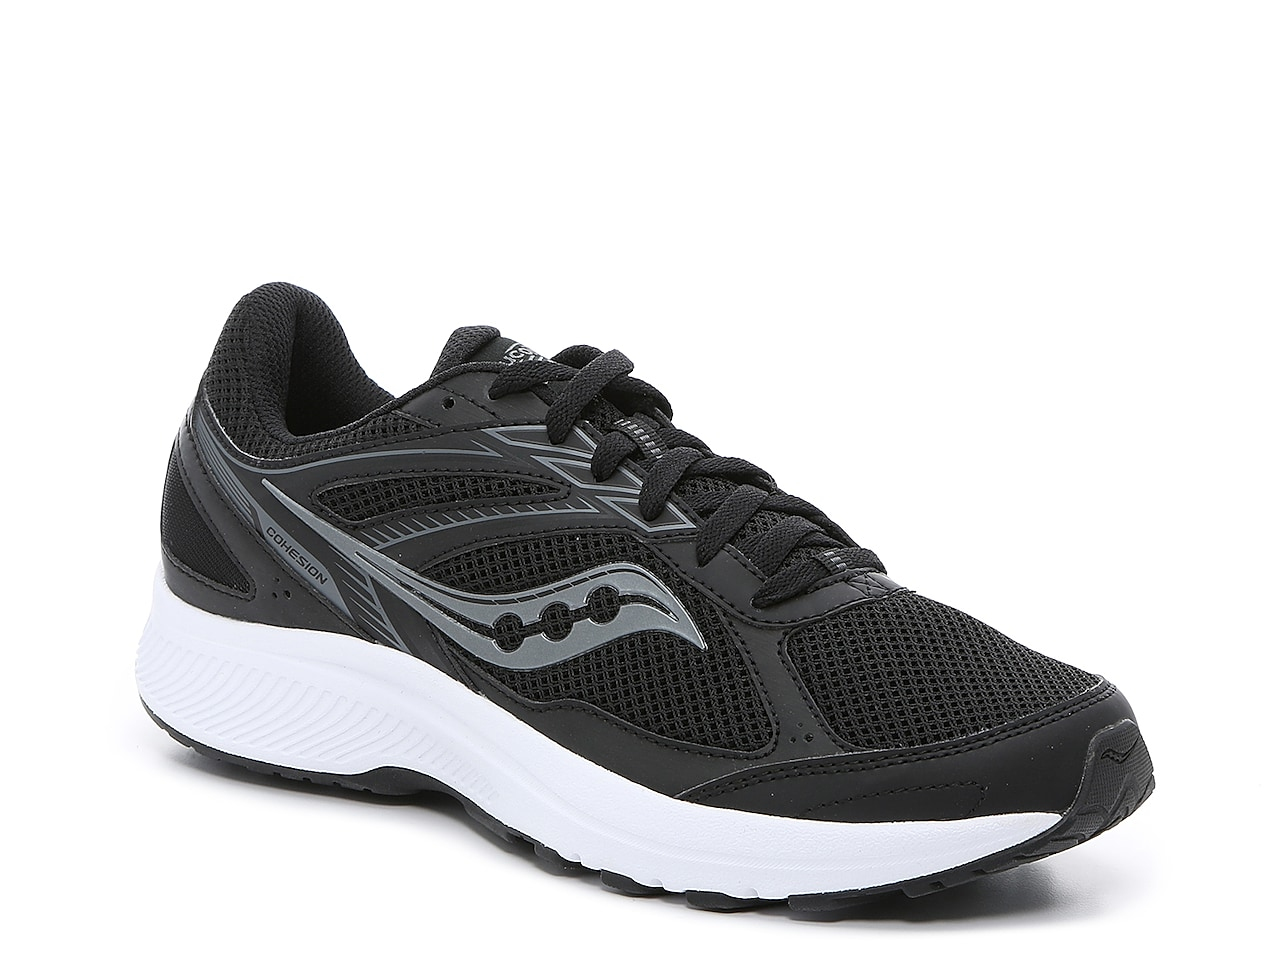 Cohesion 14 Running Shoe - Men's